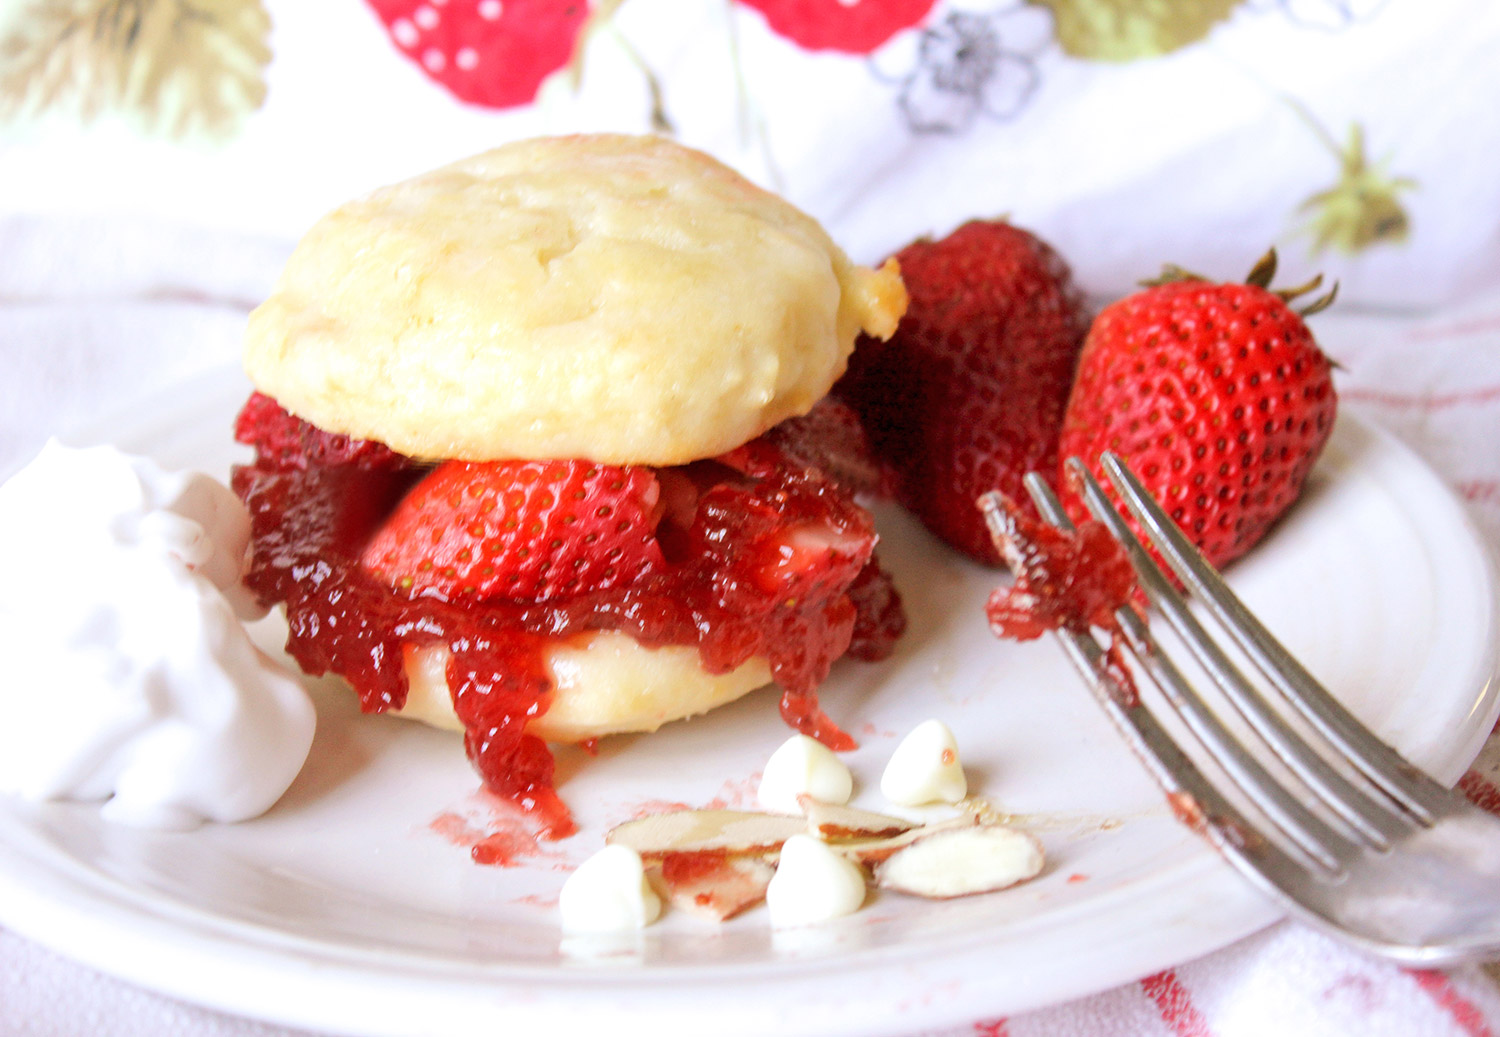 Strawberry Biscuit Scone plated with strawberry jam, fresh strawberries, almonds, and white chocolate chips.